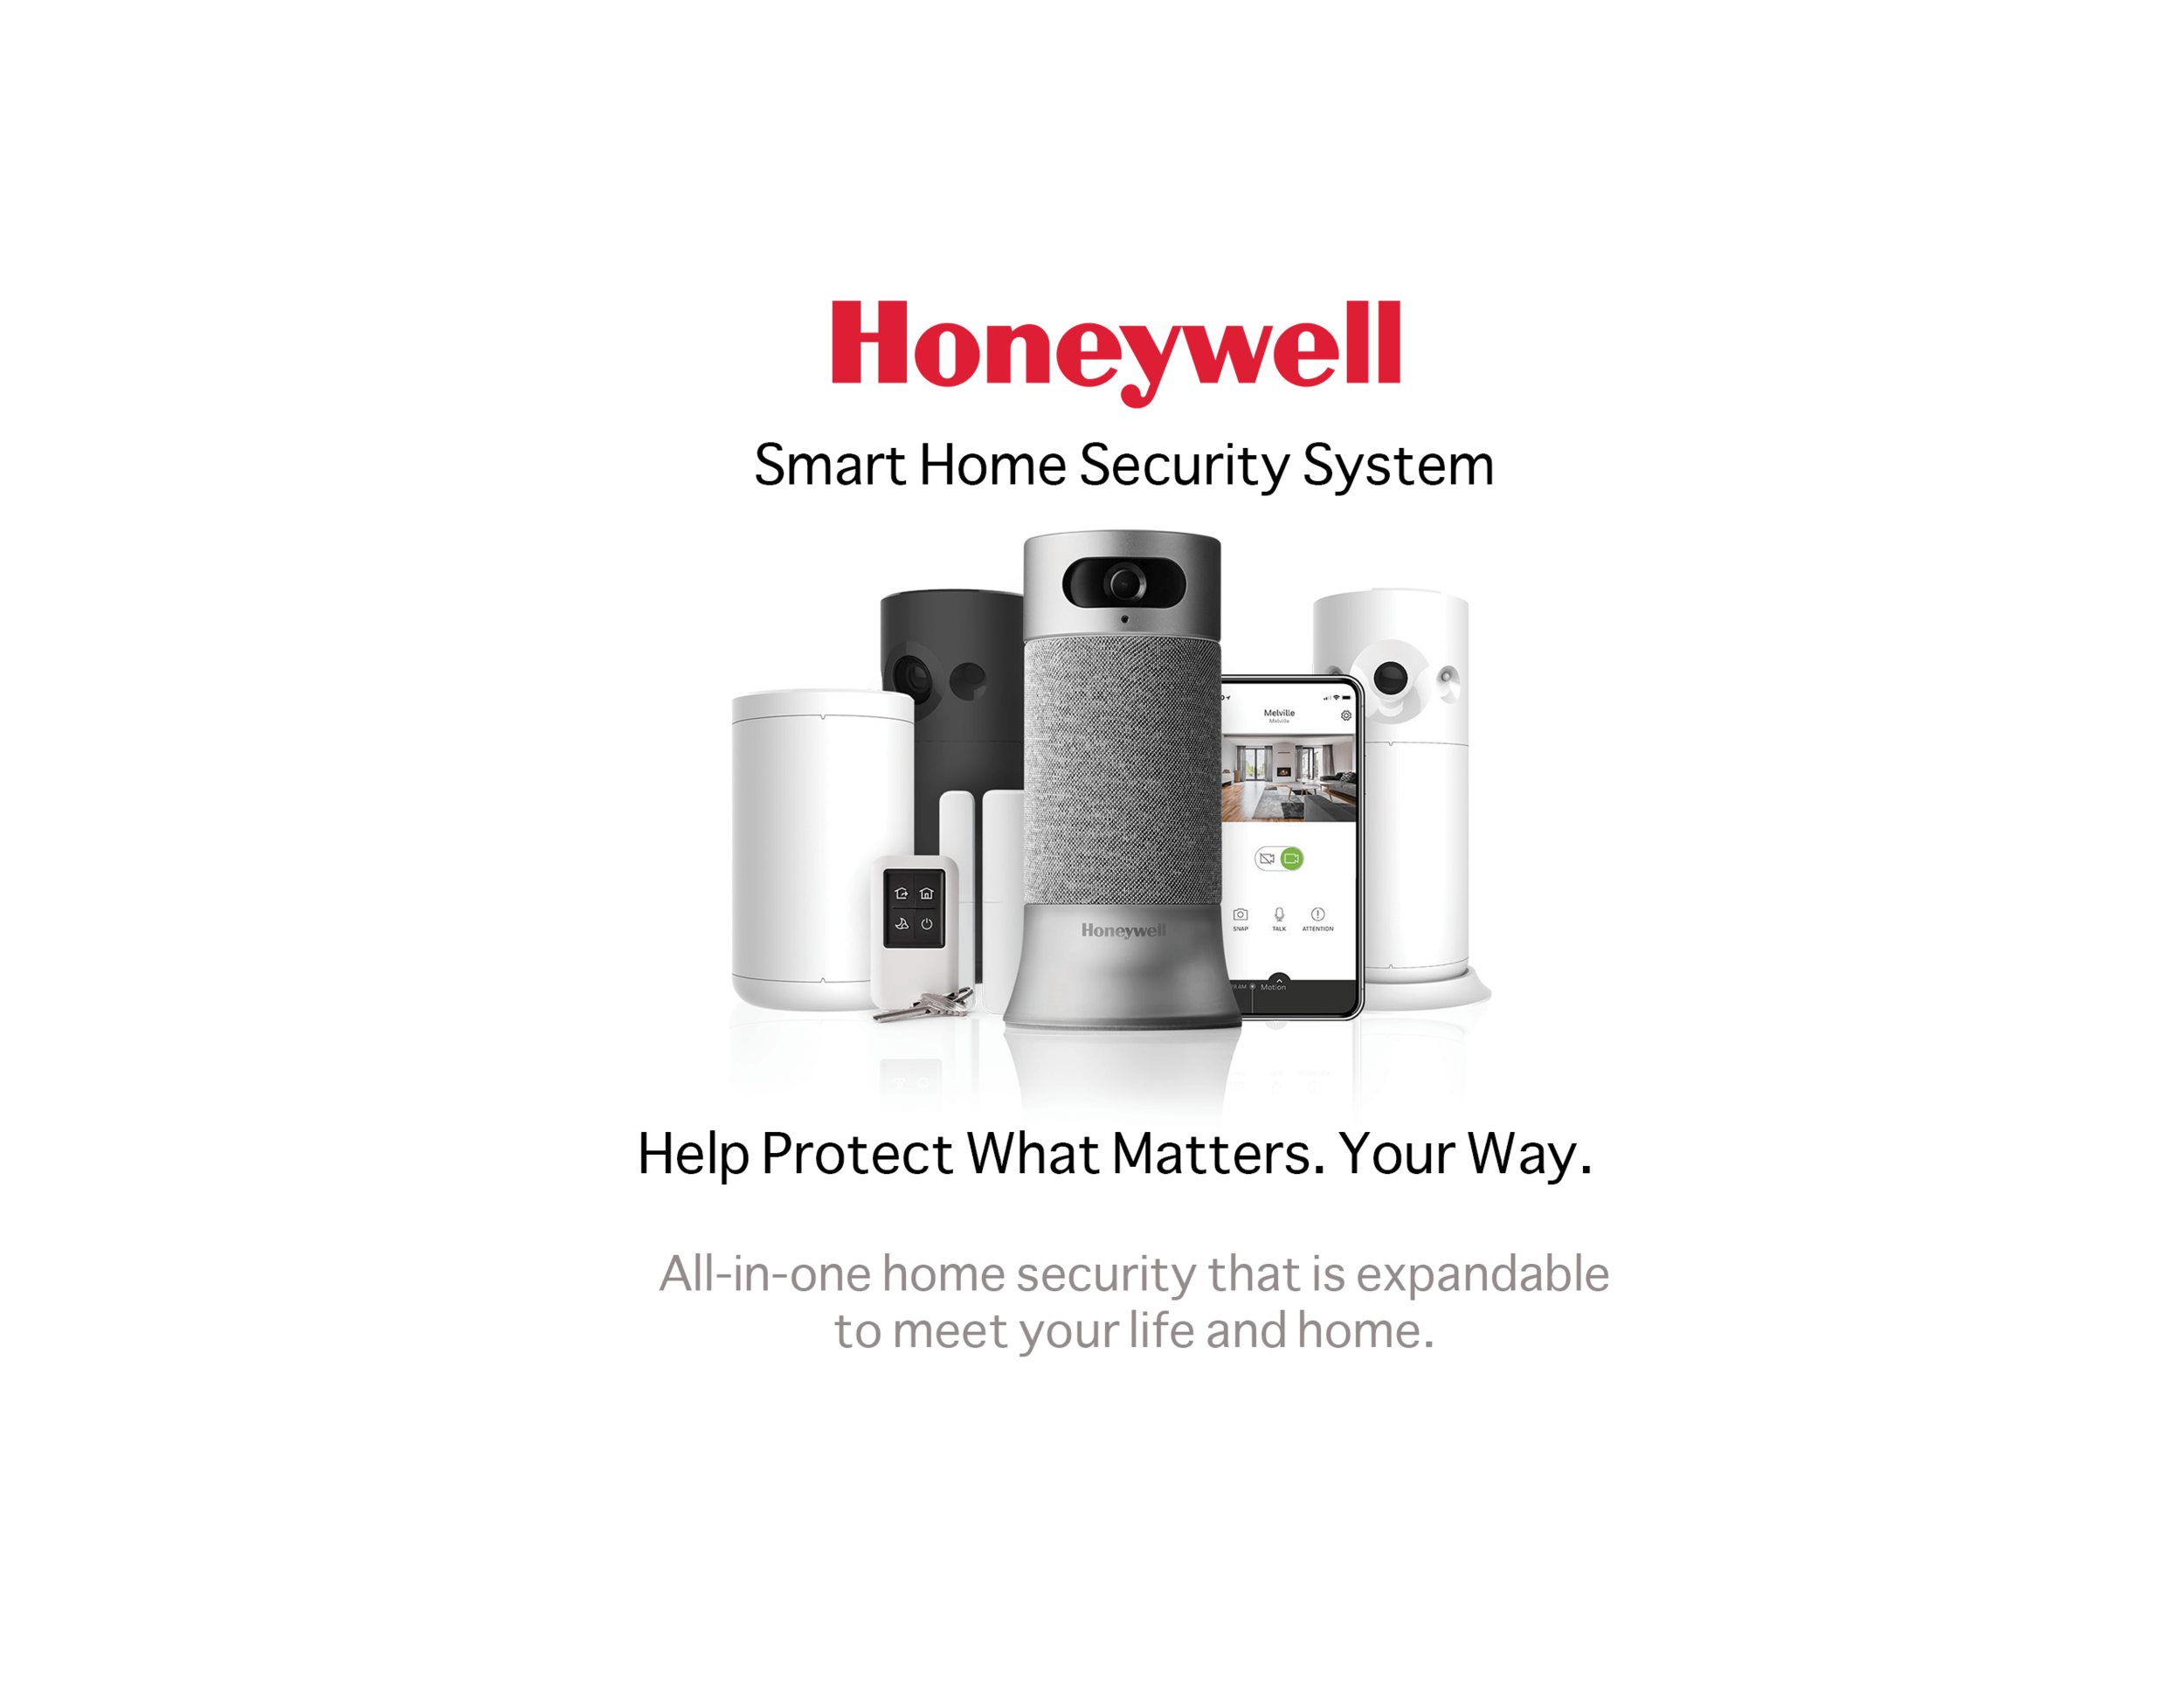 Honeywell Smart Home Security System — Jackson Control